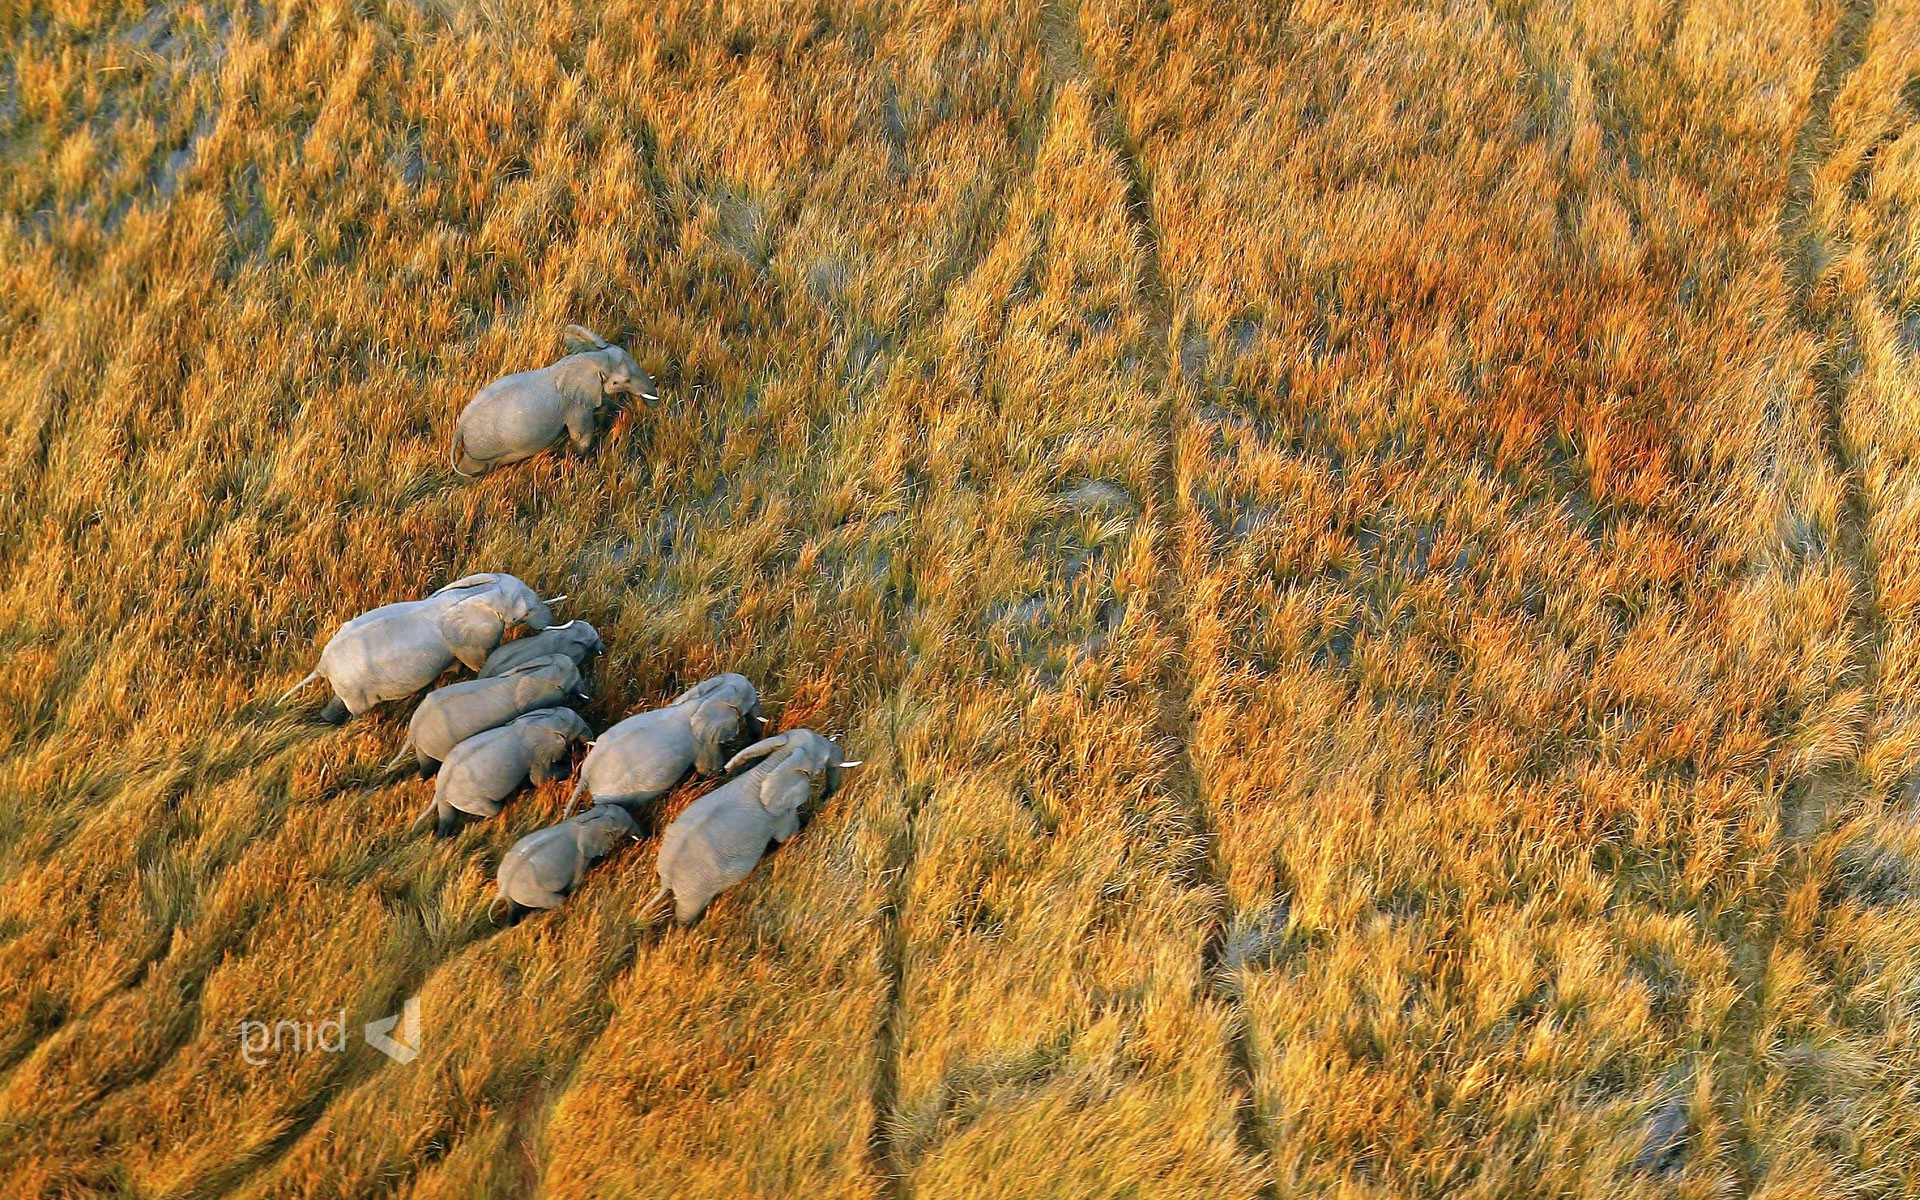 nature Landscape Plains Animals Wildlife Elephants Aerial 1920x1200